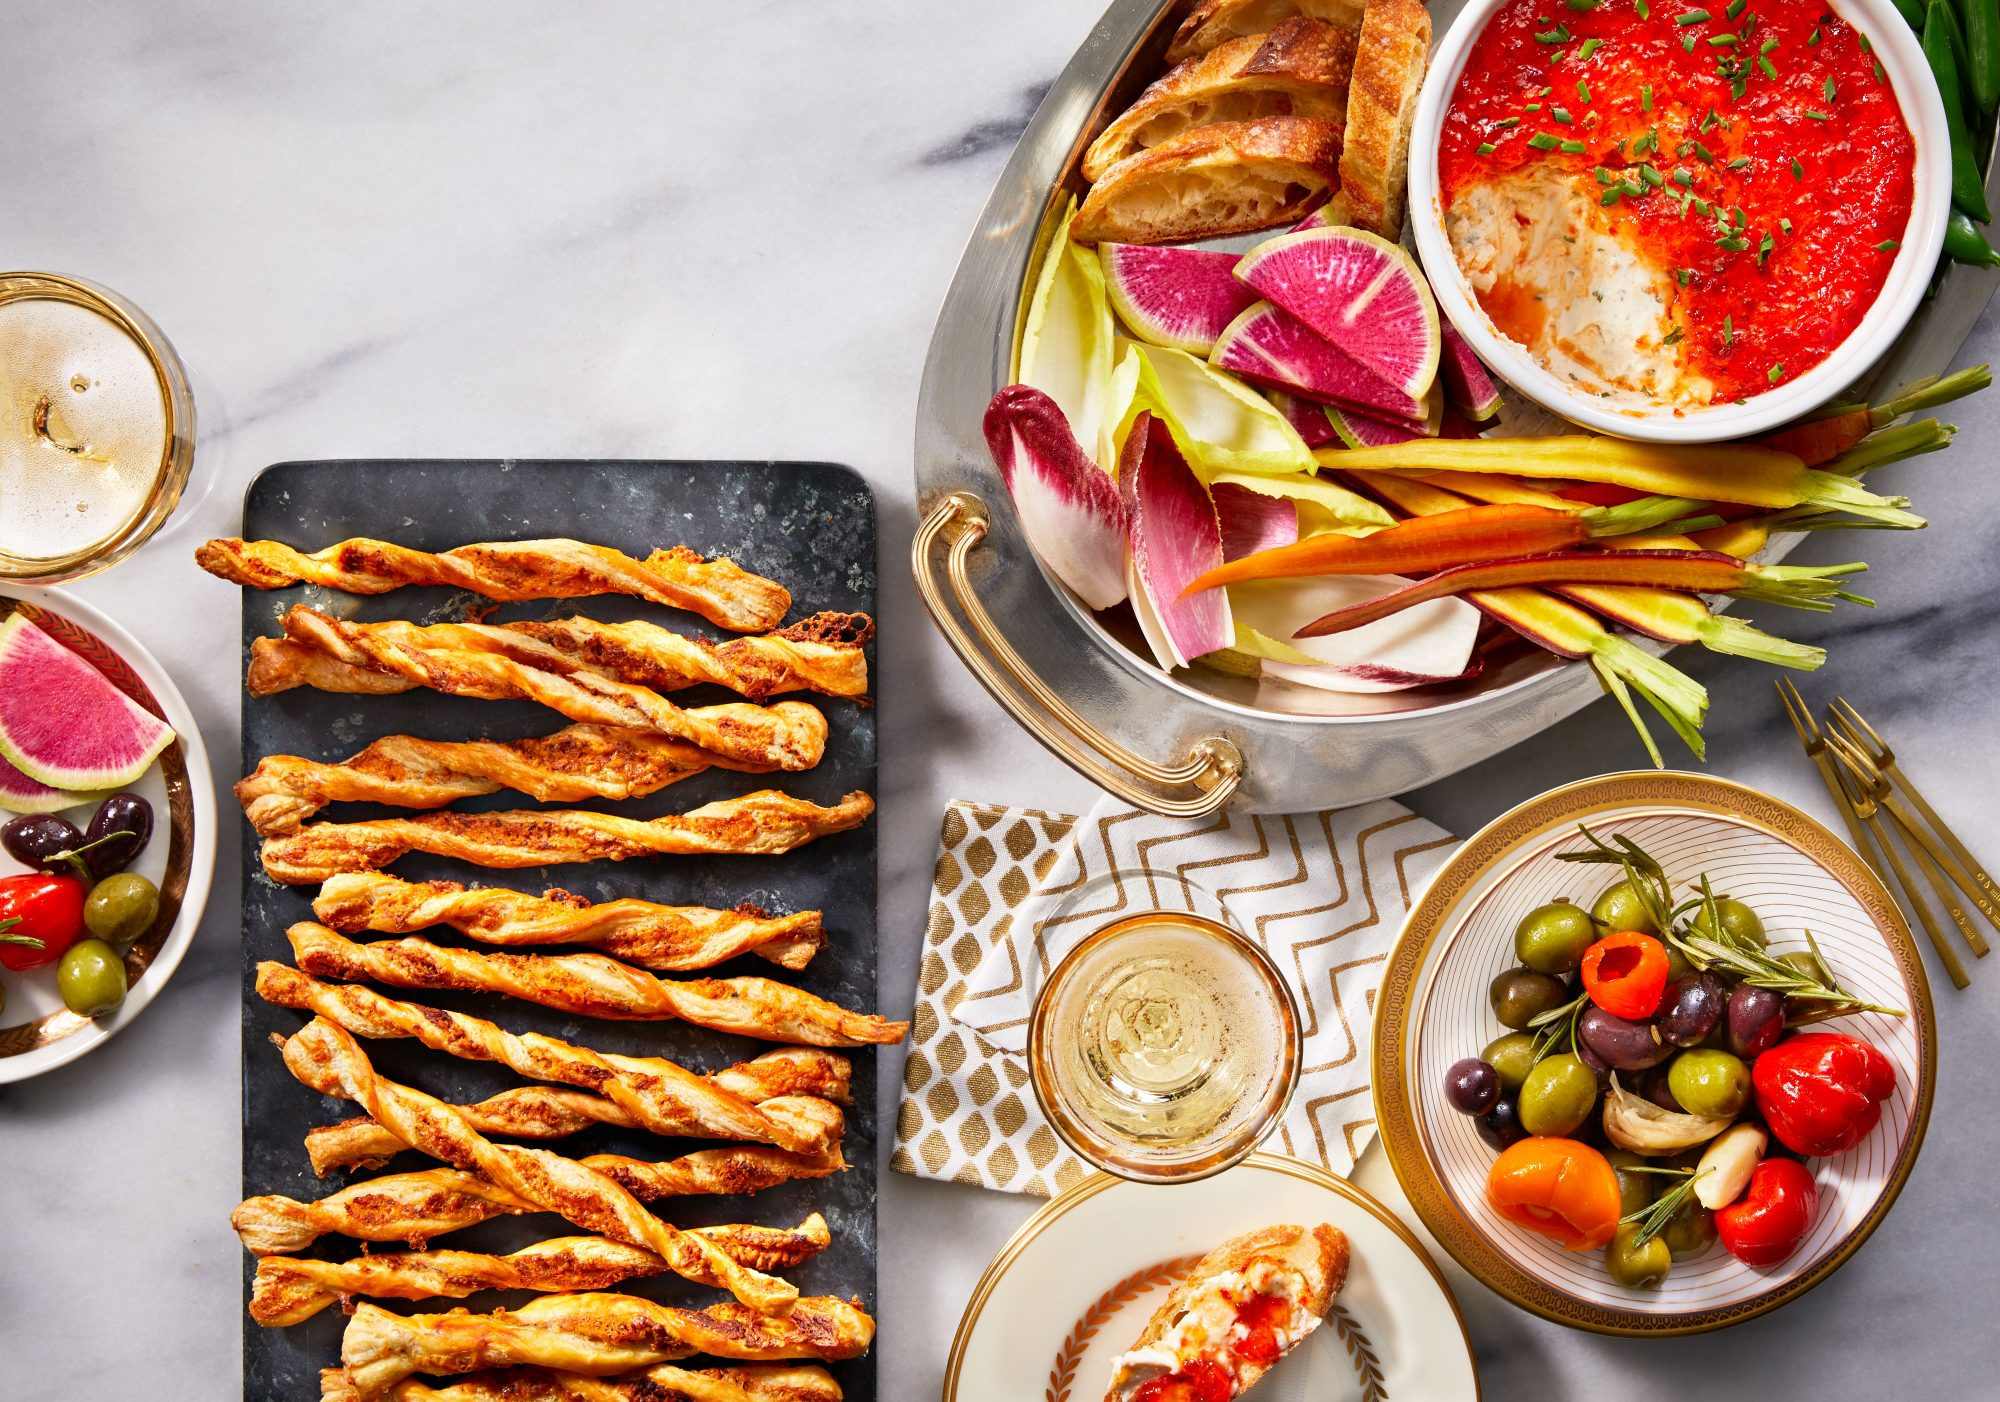 Baked Goat Cheese Spread with Pepper Jelly